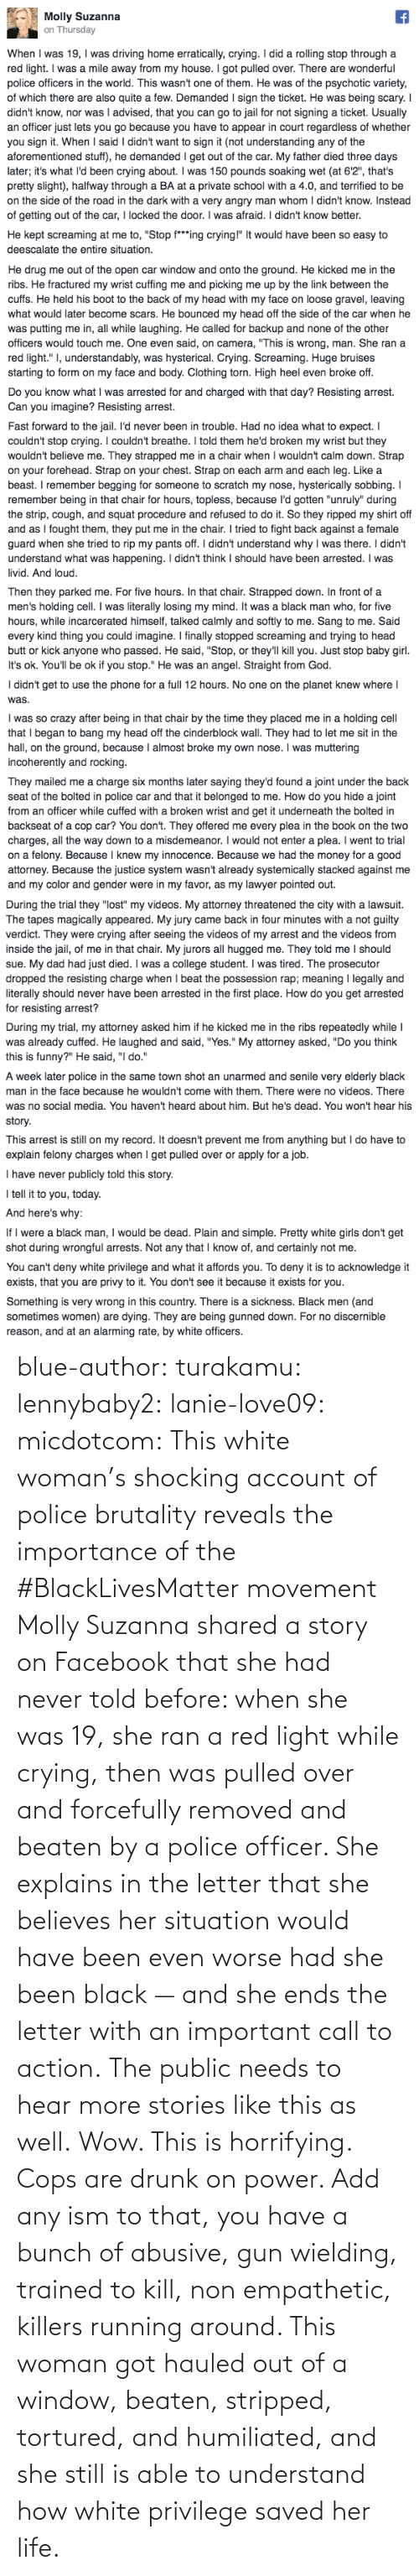 Before: blue-author: turakamu:  lennybaby2:  lanie-love09:  micdotcom:  This white woman's shocking account of police brutality reveals the importance of the #BlackLivesMatter movement Molly Suzanna shared a story on Facebook that she had never told before: when she was 19, she ran a red light while crying, then was pulled over and forcefully removed and beaten by a police officer. She explains in the letter that she believes her situation would have been even worse had she been black — and she ends the letter with an important call to action.  The public needs to hear more stories like this as well.  Wow. This is horrifying.  Cops are drunk on power. Add any ism to that, you have a bunch of abusive, gun wielding, trained to kill, non empathetic, killers running around.    This woman got hauled out of a window, beaten, stripped, tortured, and humiliated, and she still is able to understand how white privilege saved her life.